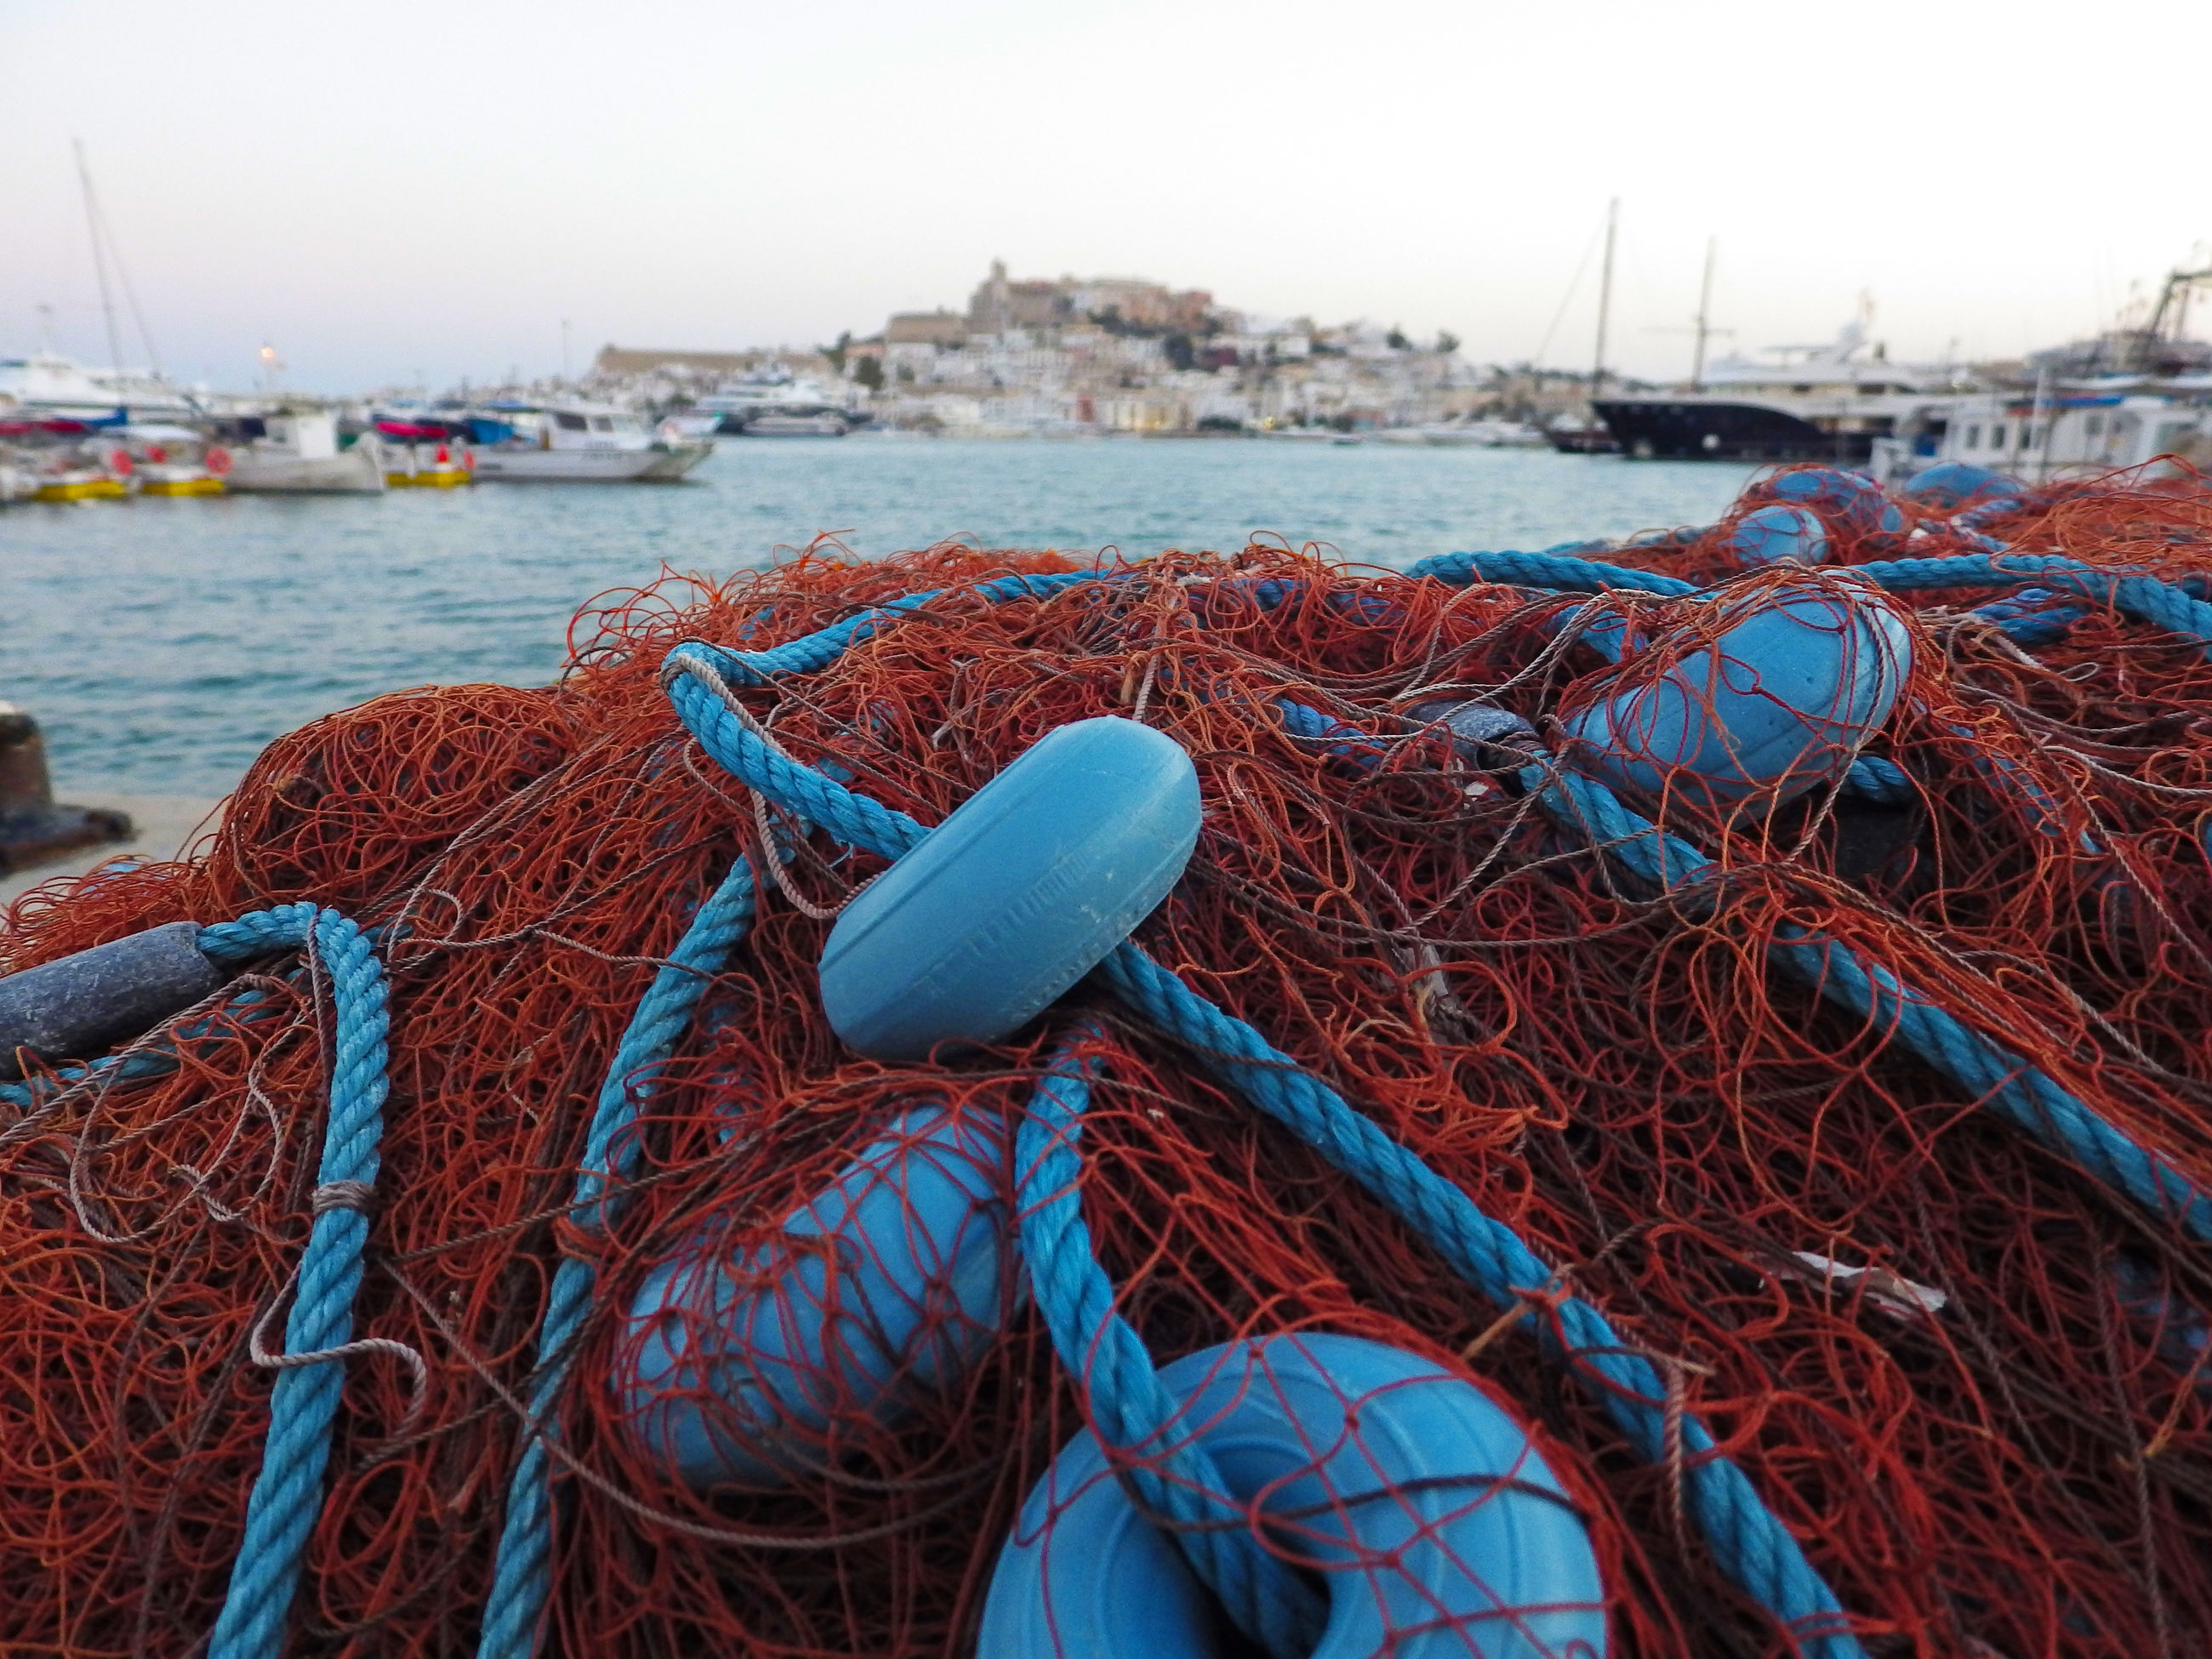 Close-up of a commercial fishing net